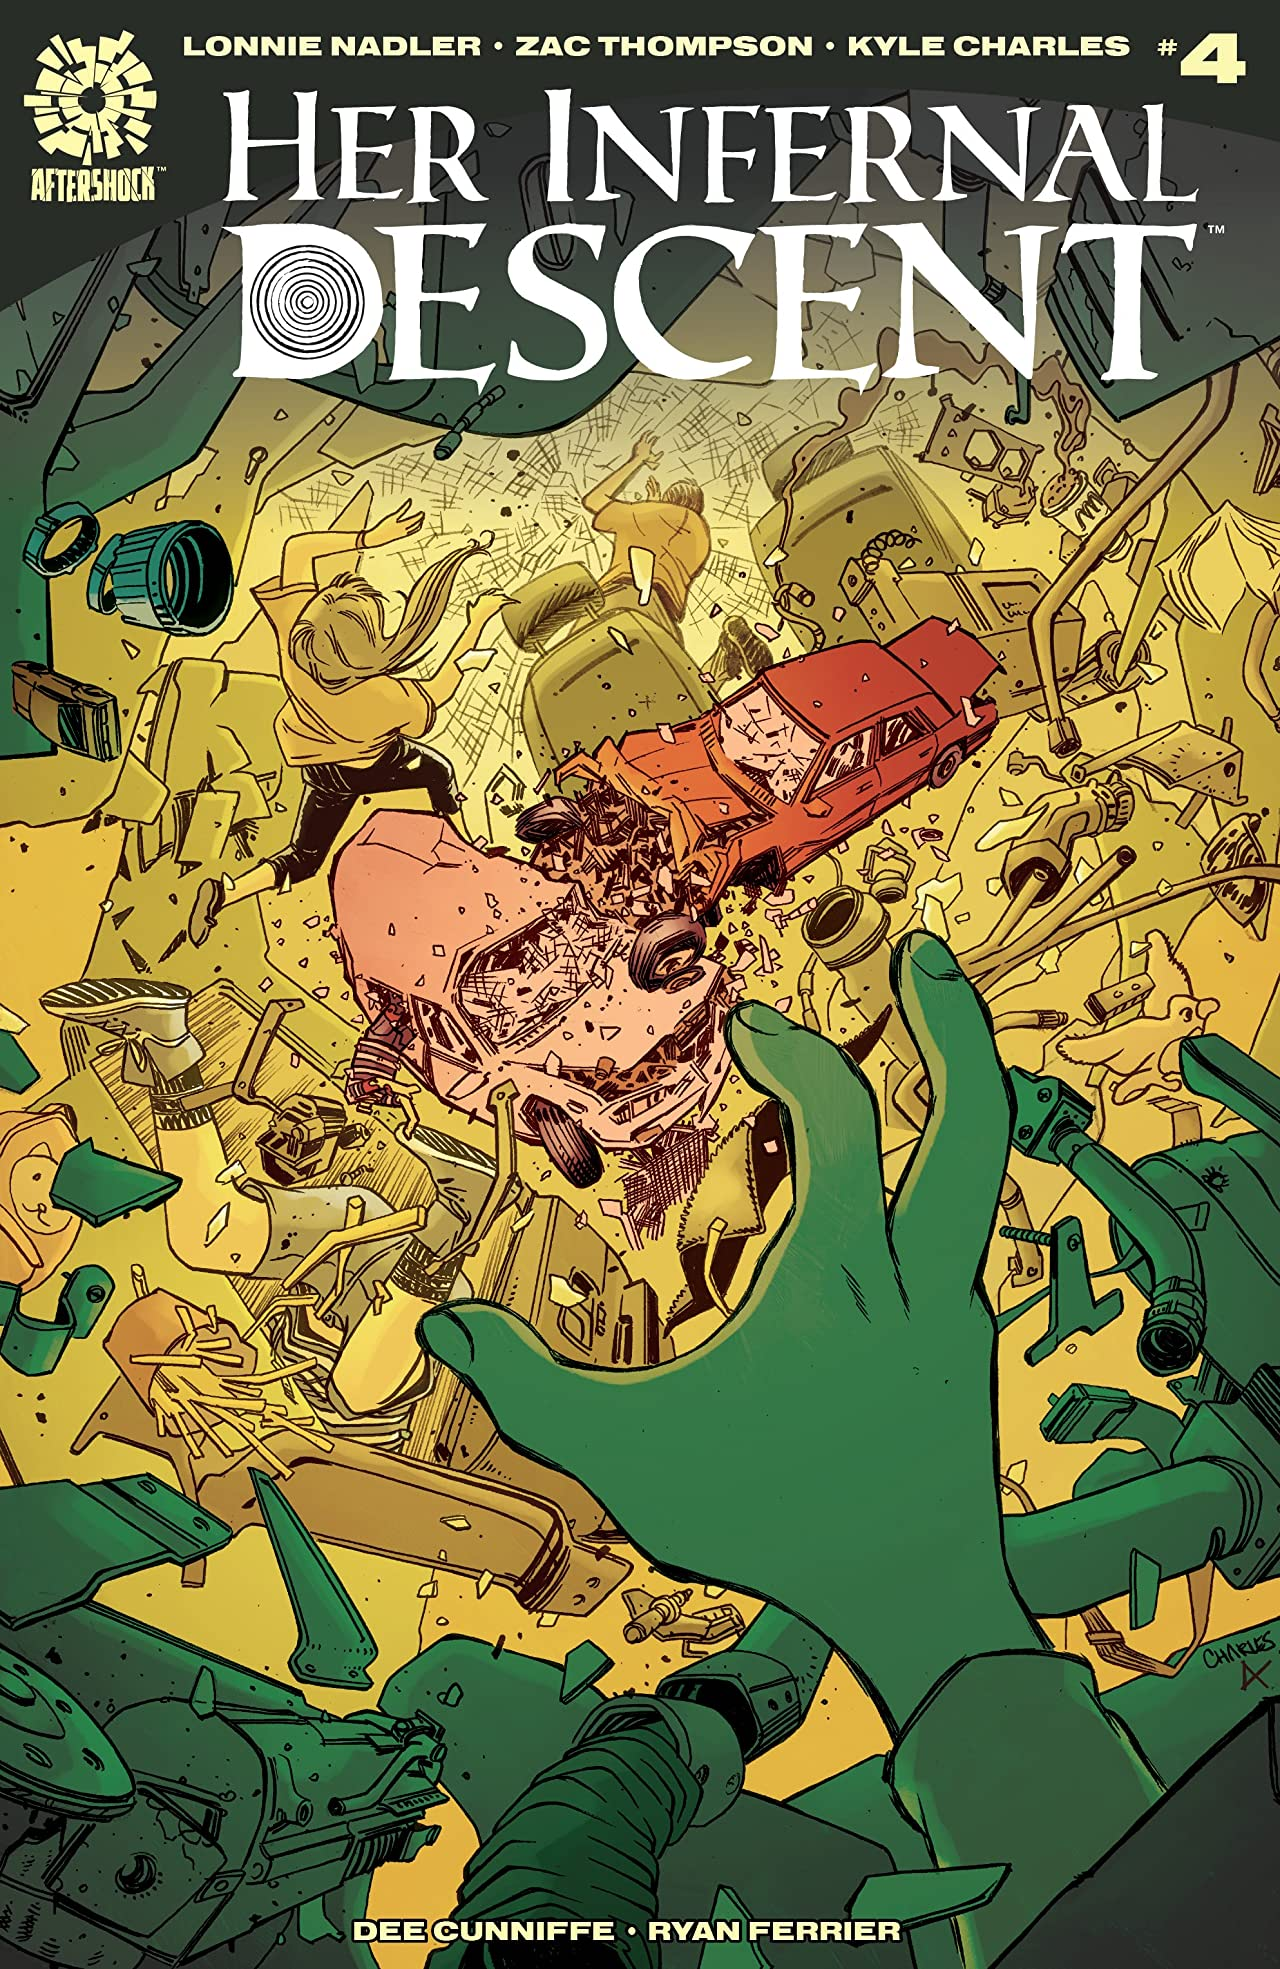 Her Infernal Descent #4